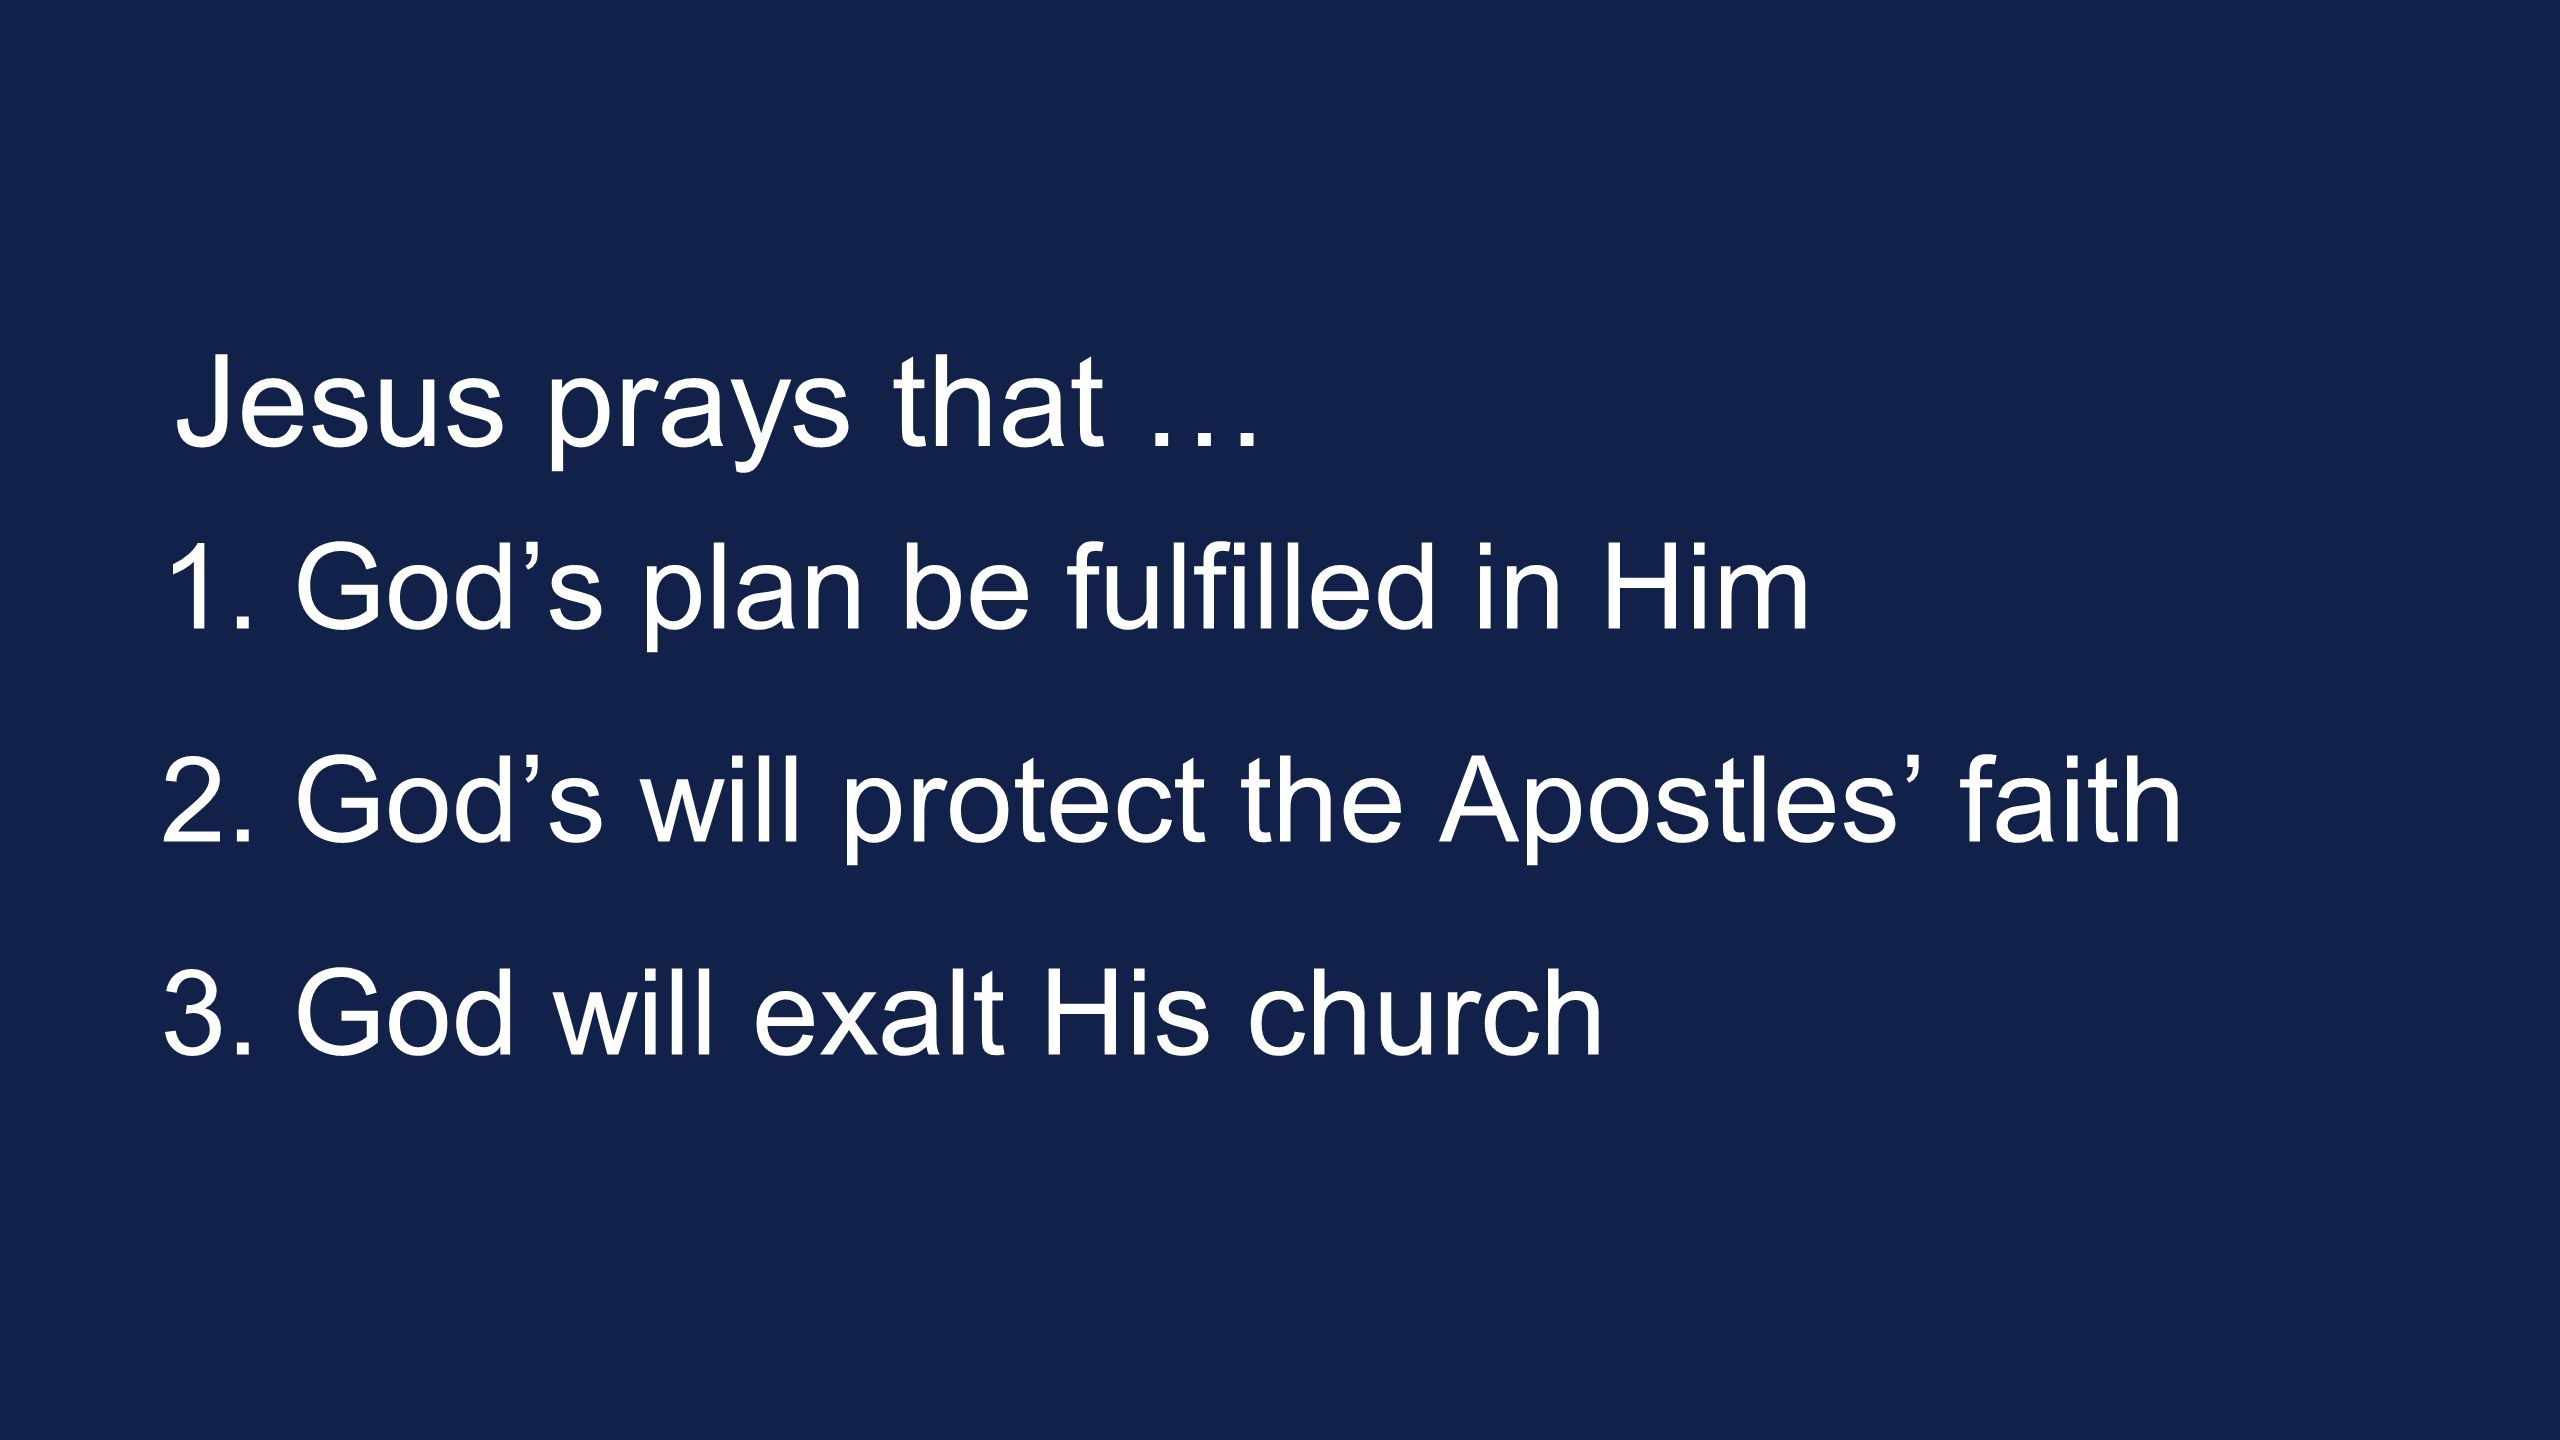 Jesus prays that … 1. God's plan be fulfilled in Him 2. God's will protect the Apostles' faith 3. God will exalt His church